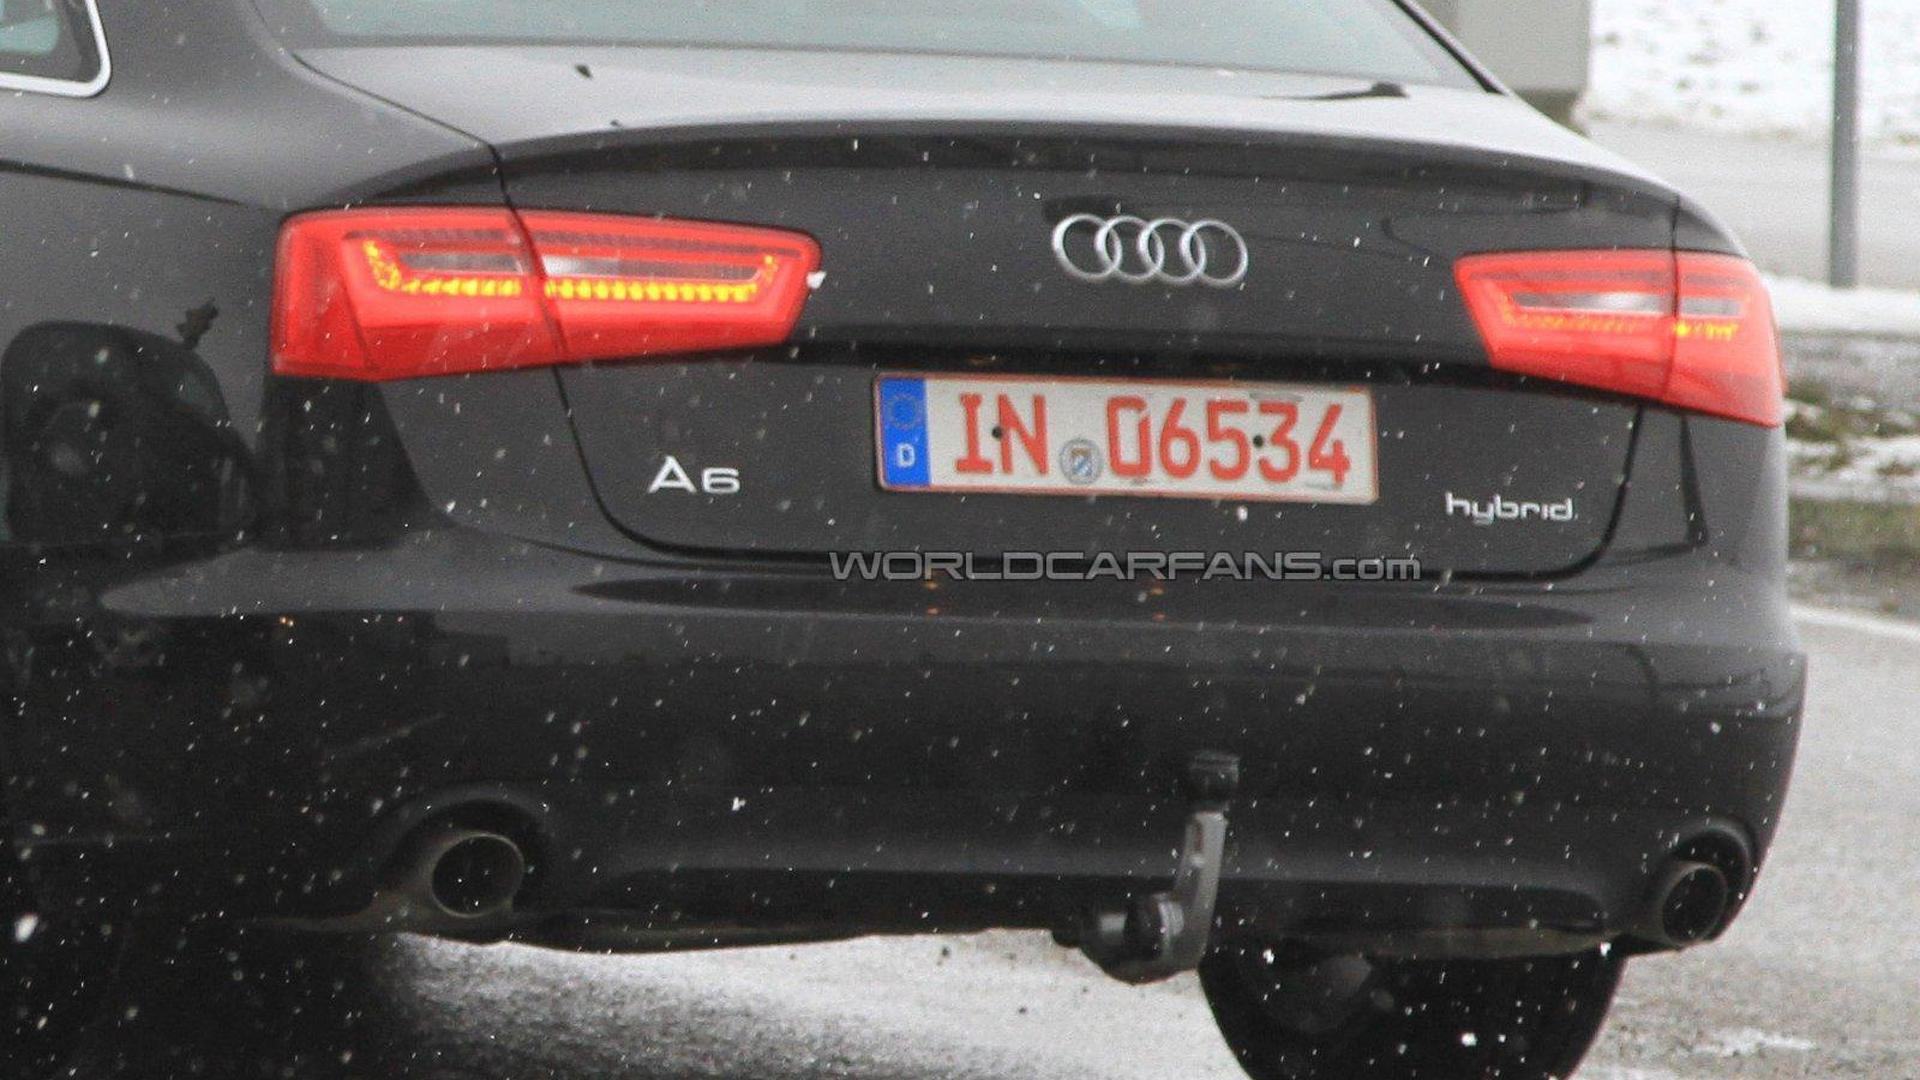 Audi A6 Hybrid on the road for the first time